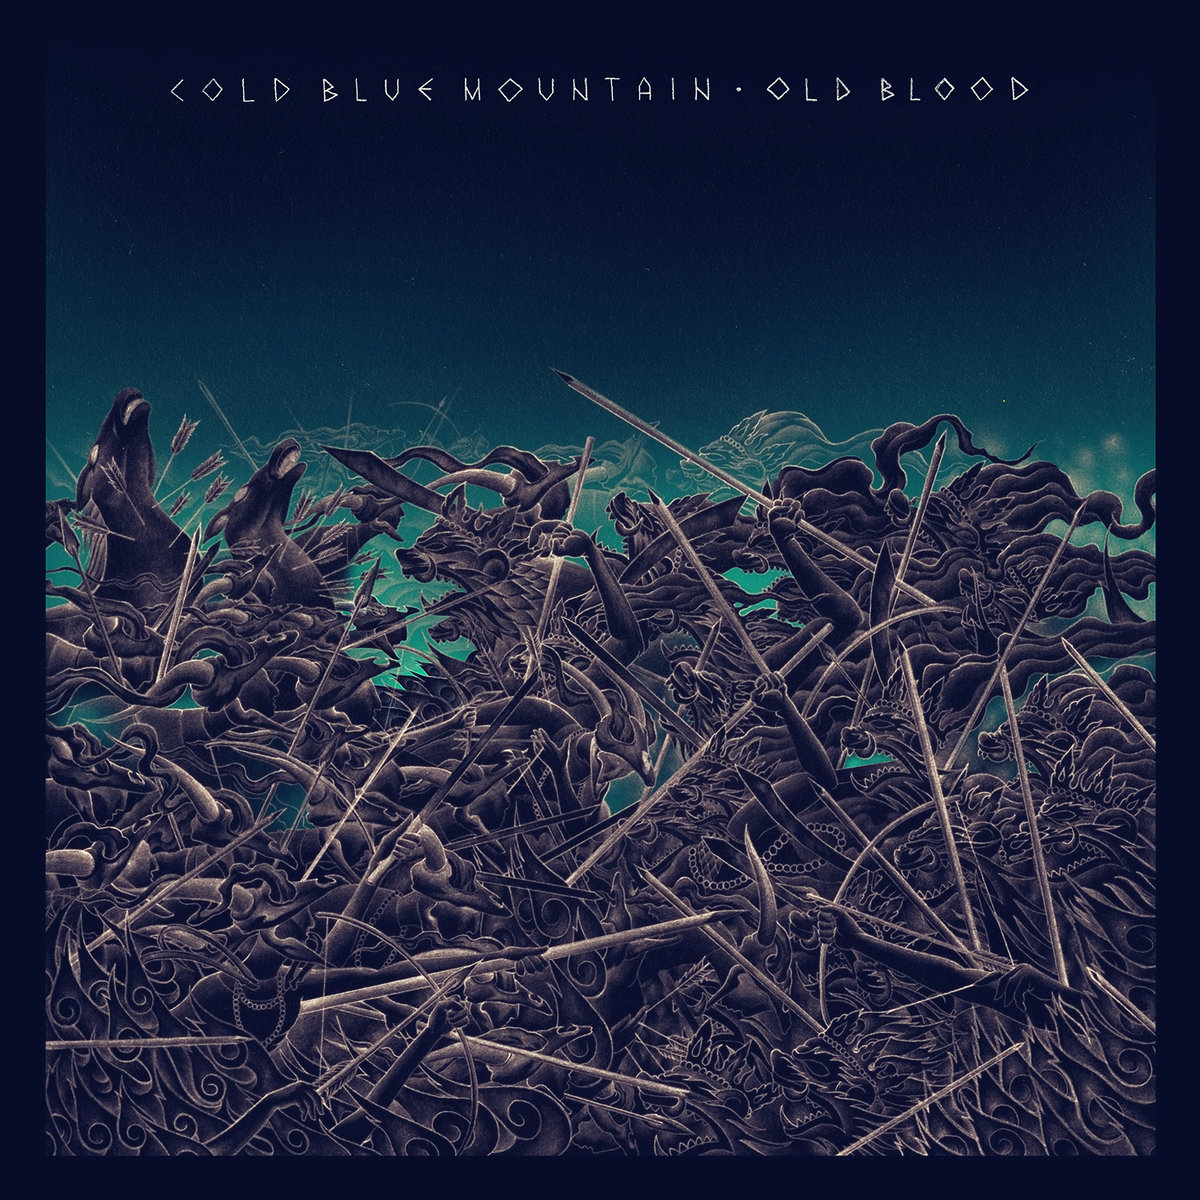 Cold Blue Mountain - Seed Of Dissent @ 'Old Blood' album (metal, crust)